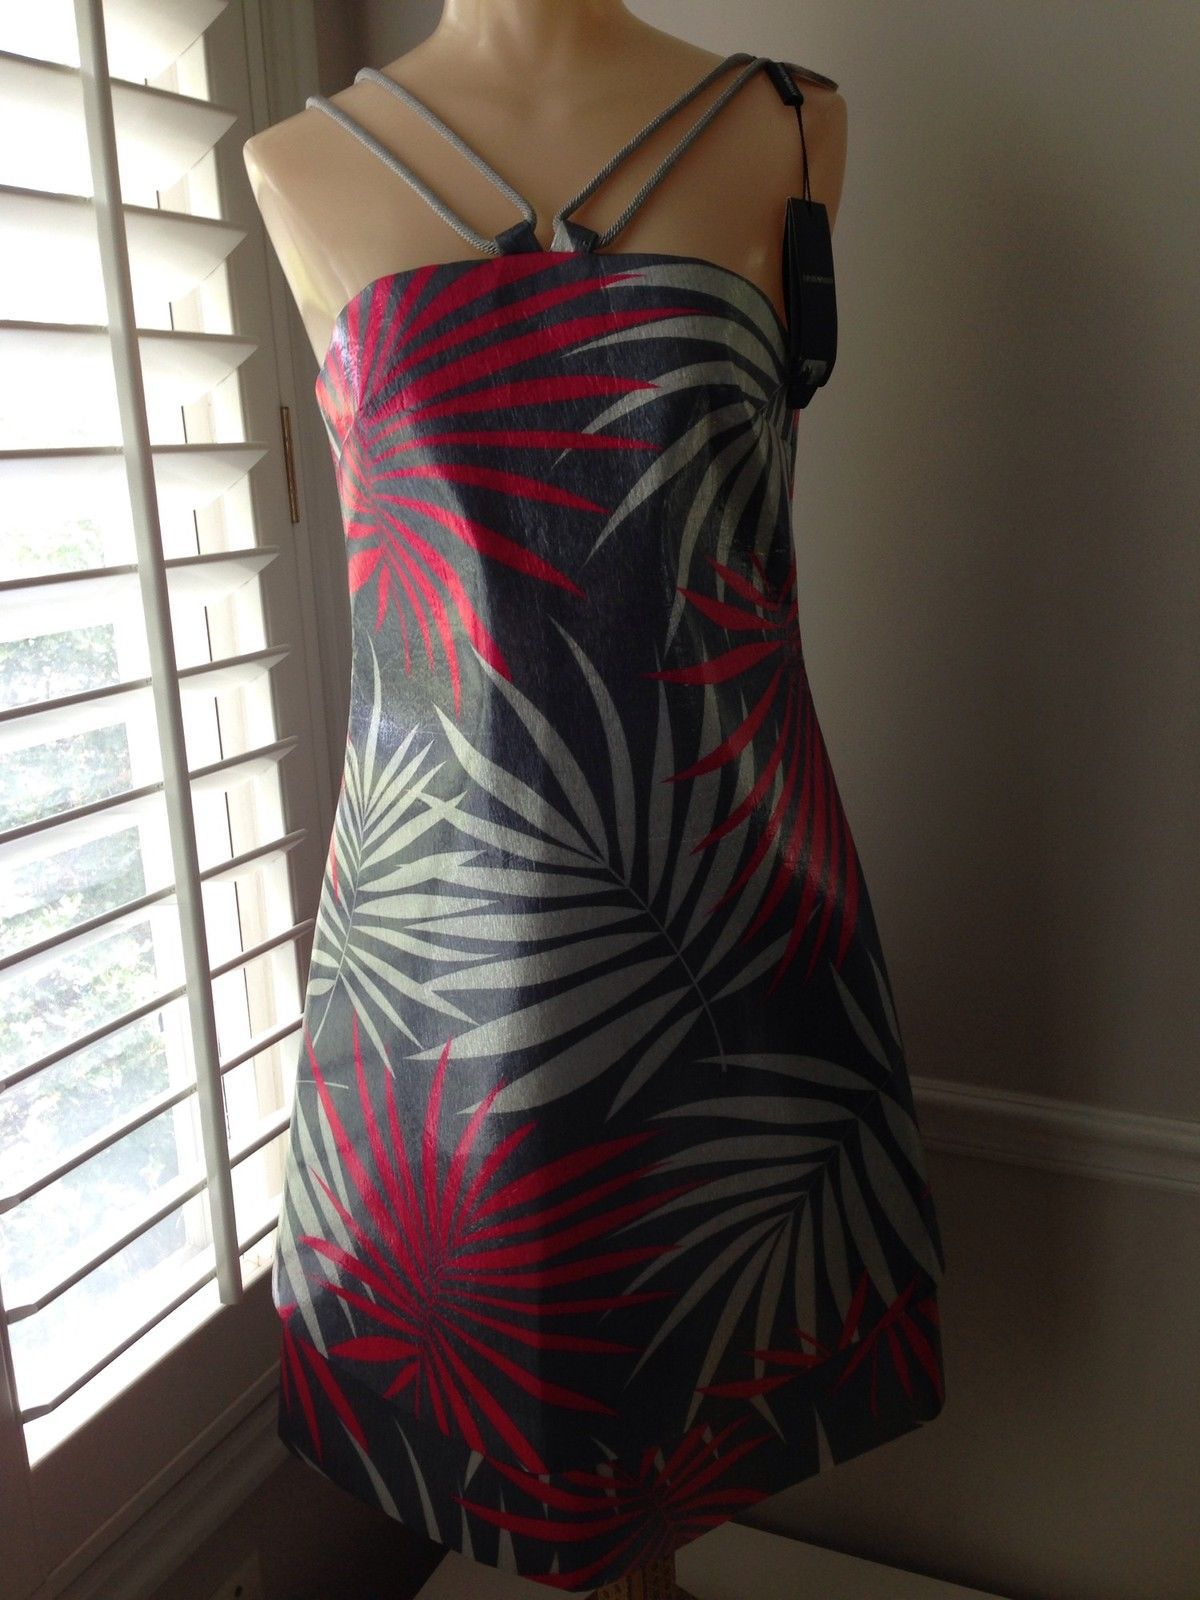 EMPORIO ARMANI DRESS - SIZE 42 - NWT MSRP $1275